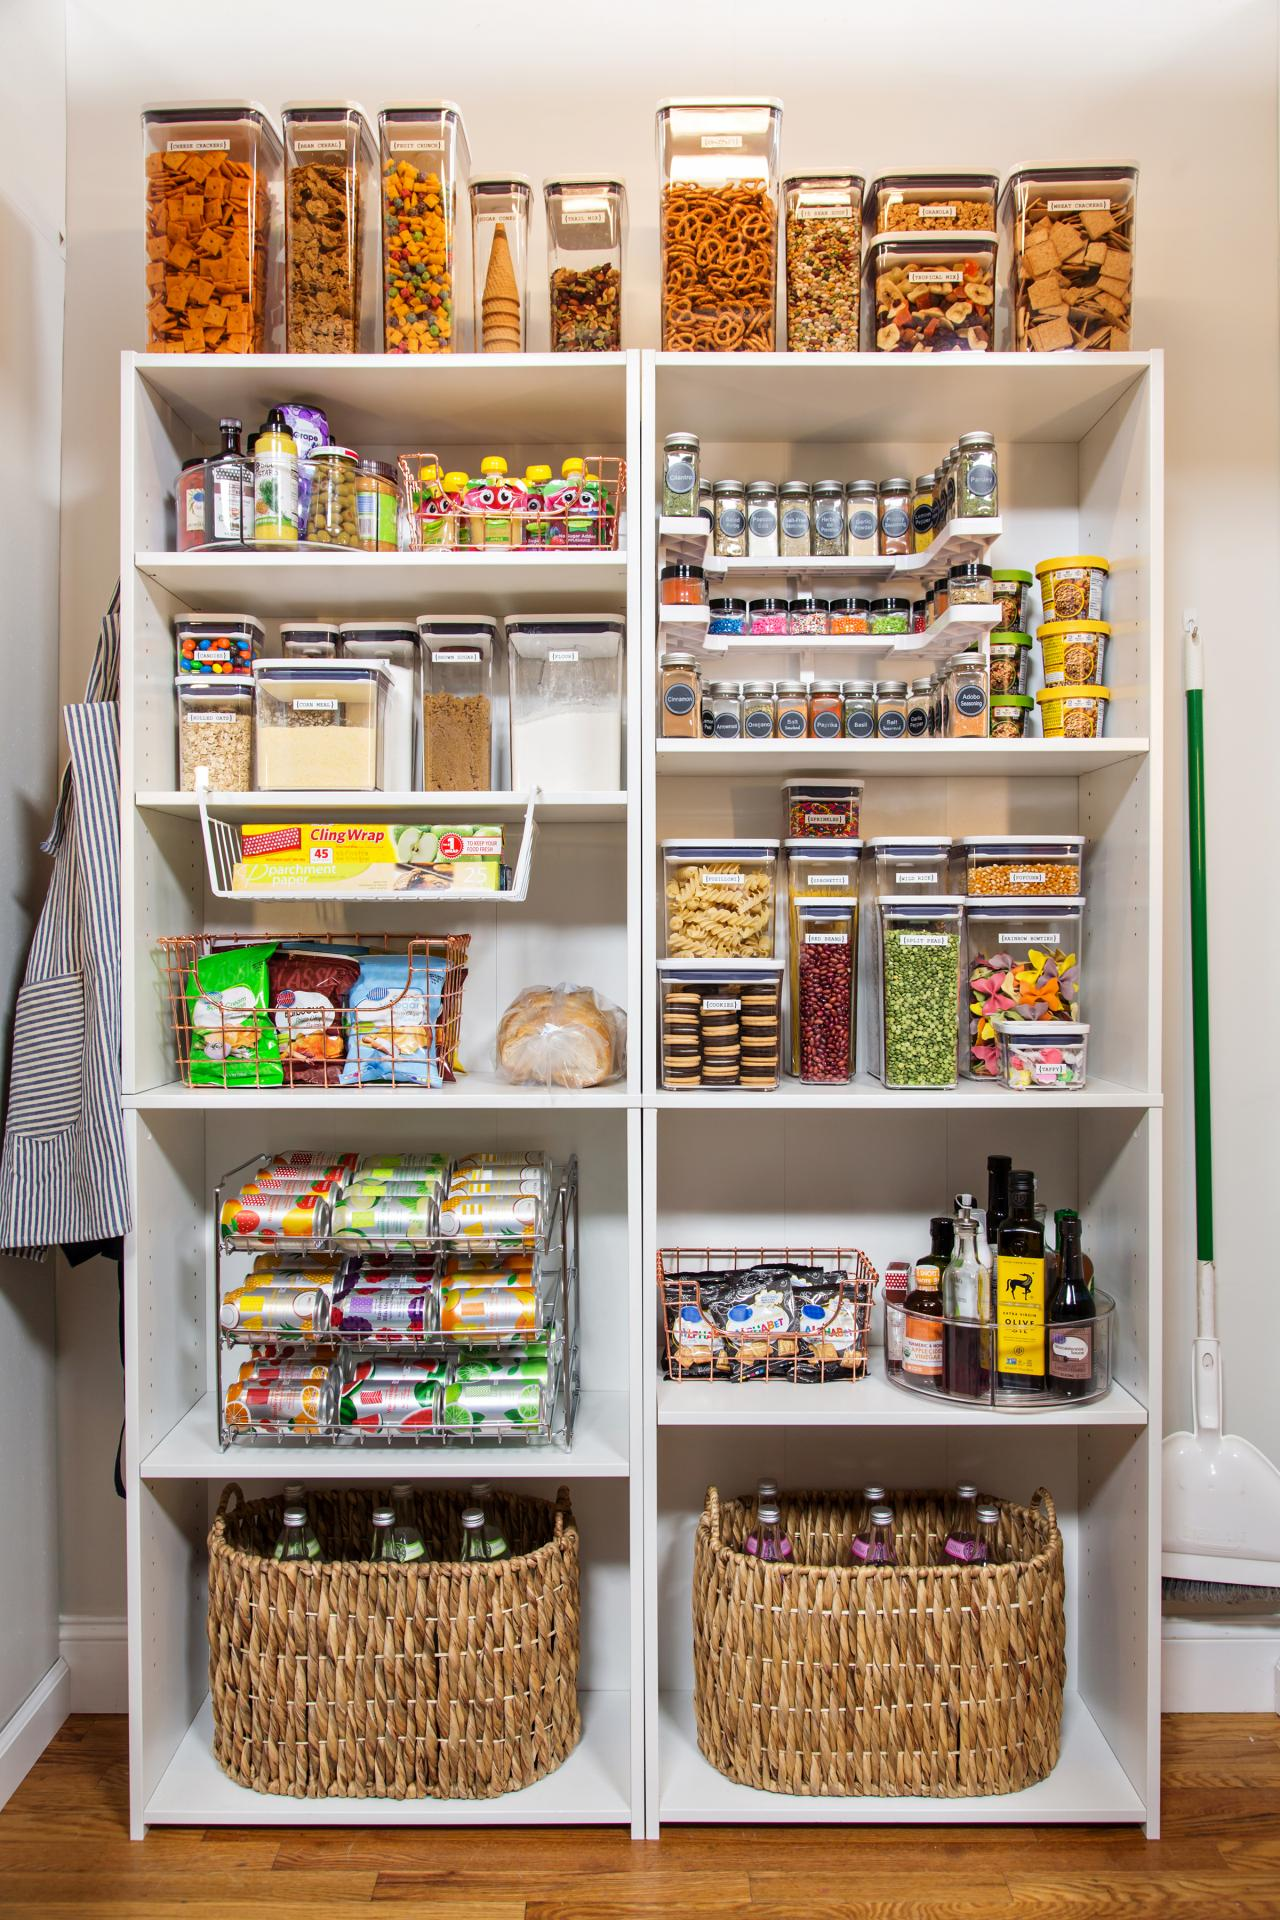 Best Products and Tips for an Organized Pantry | HGTV